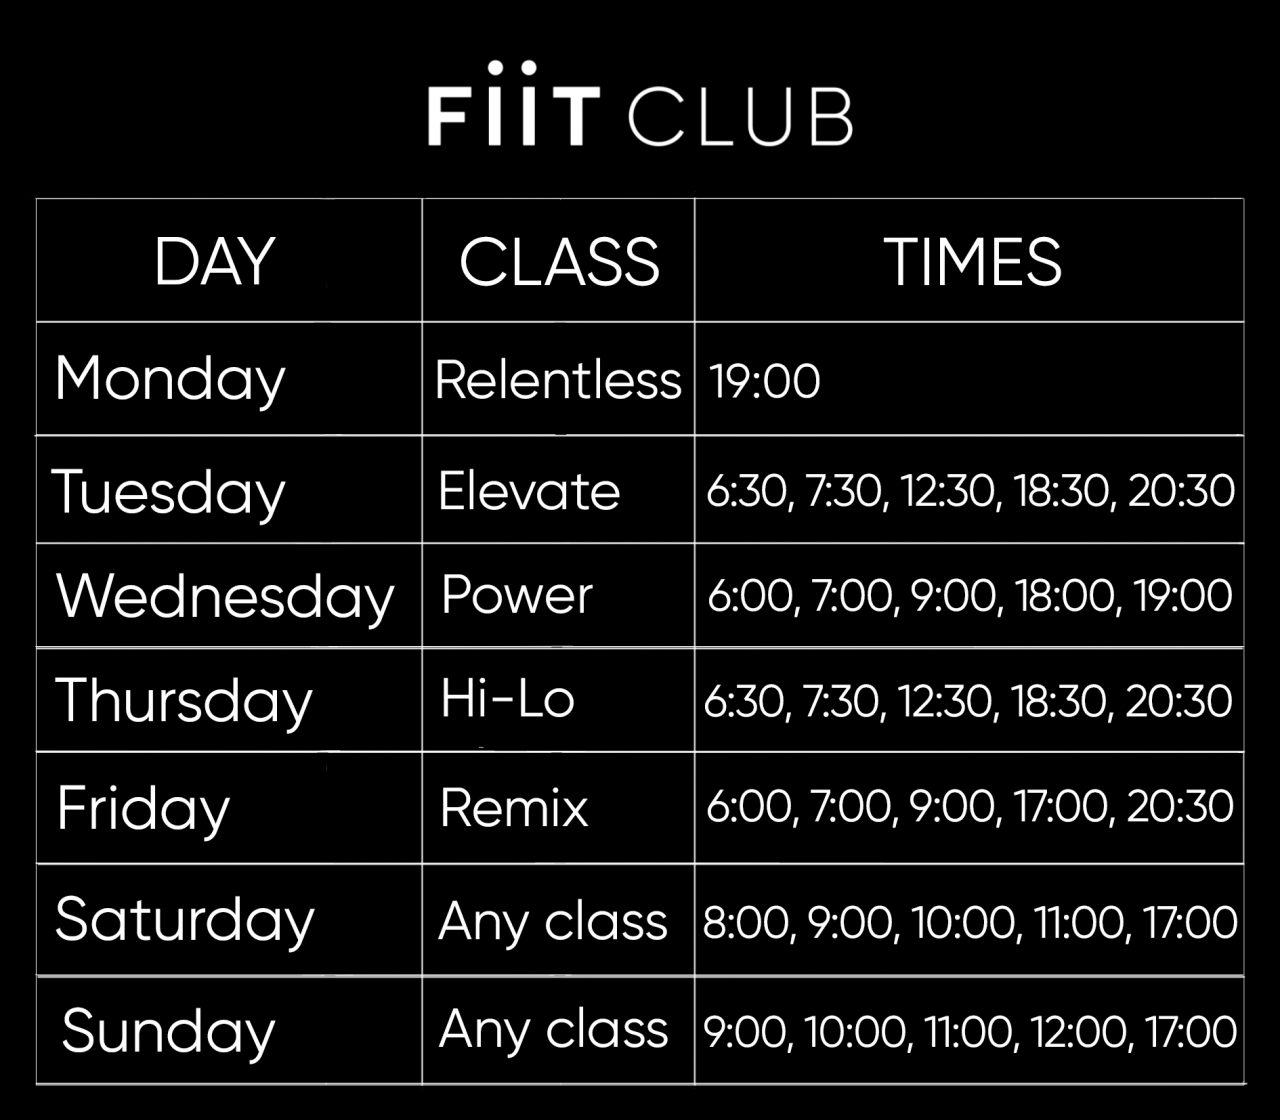 Weekly Fiit Club class schedule